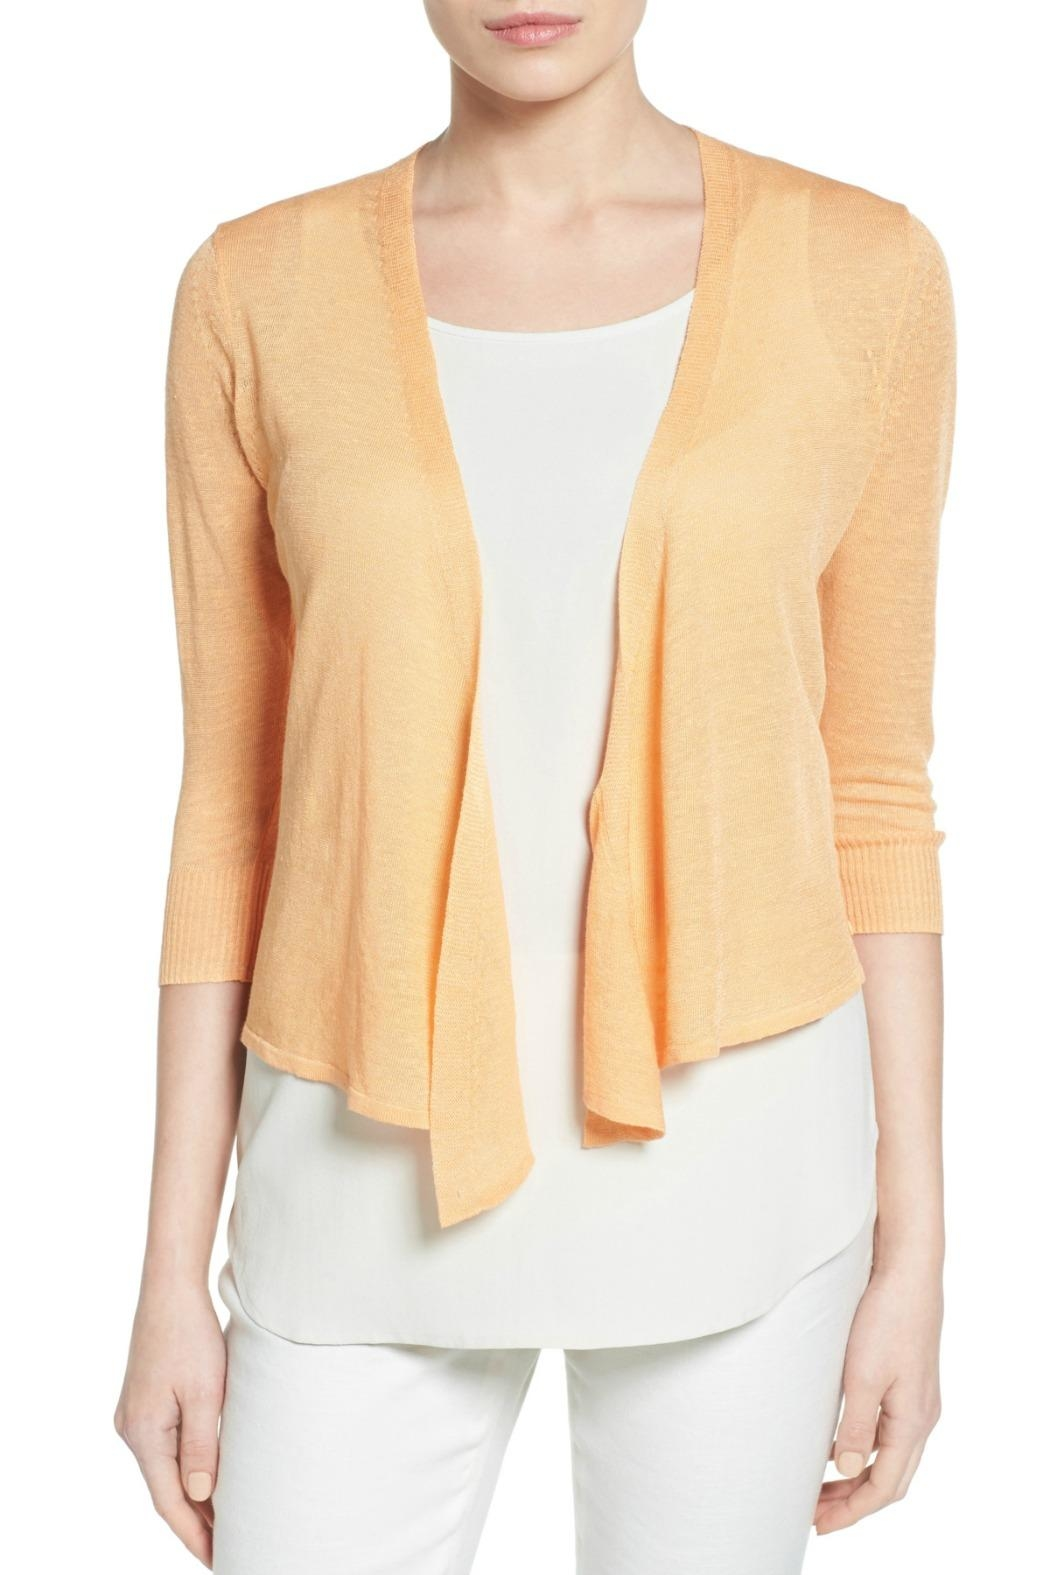 Nic + Zoe 4 Way Cardigan - Front Cropped Image